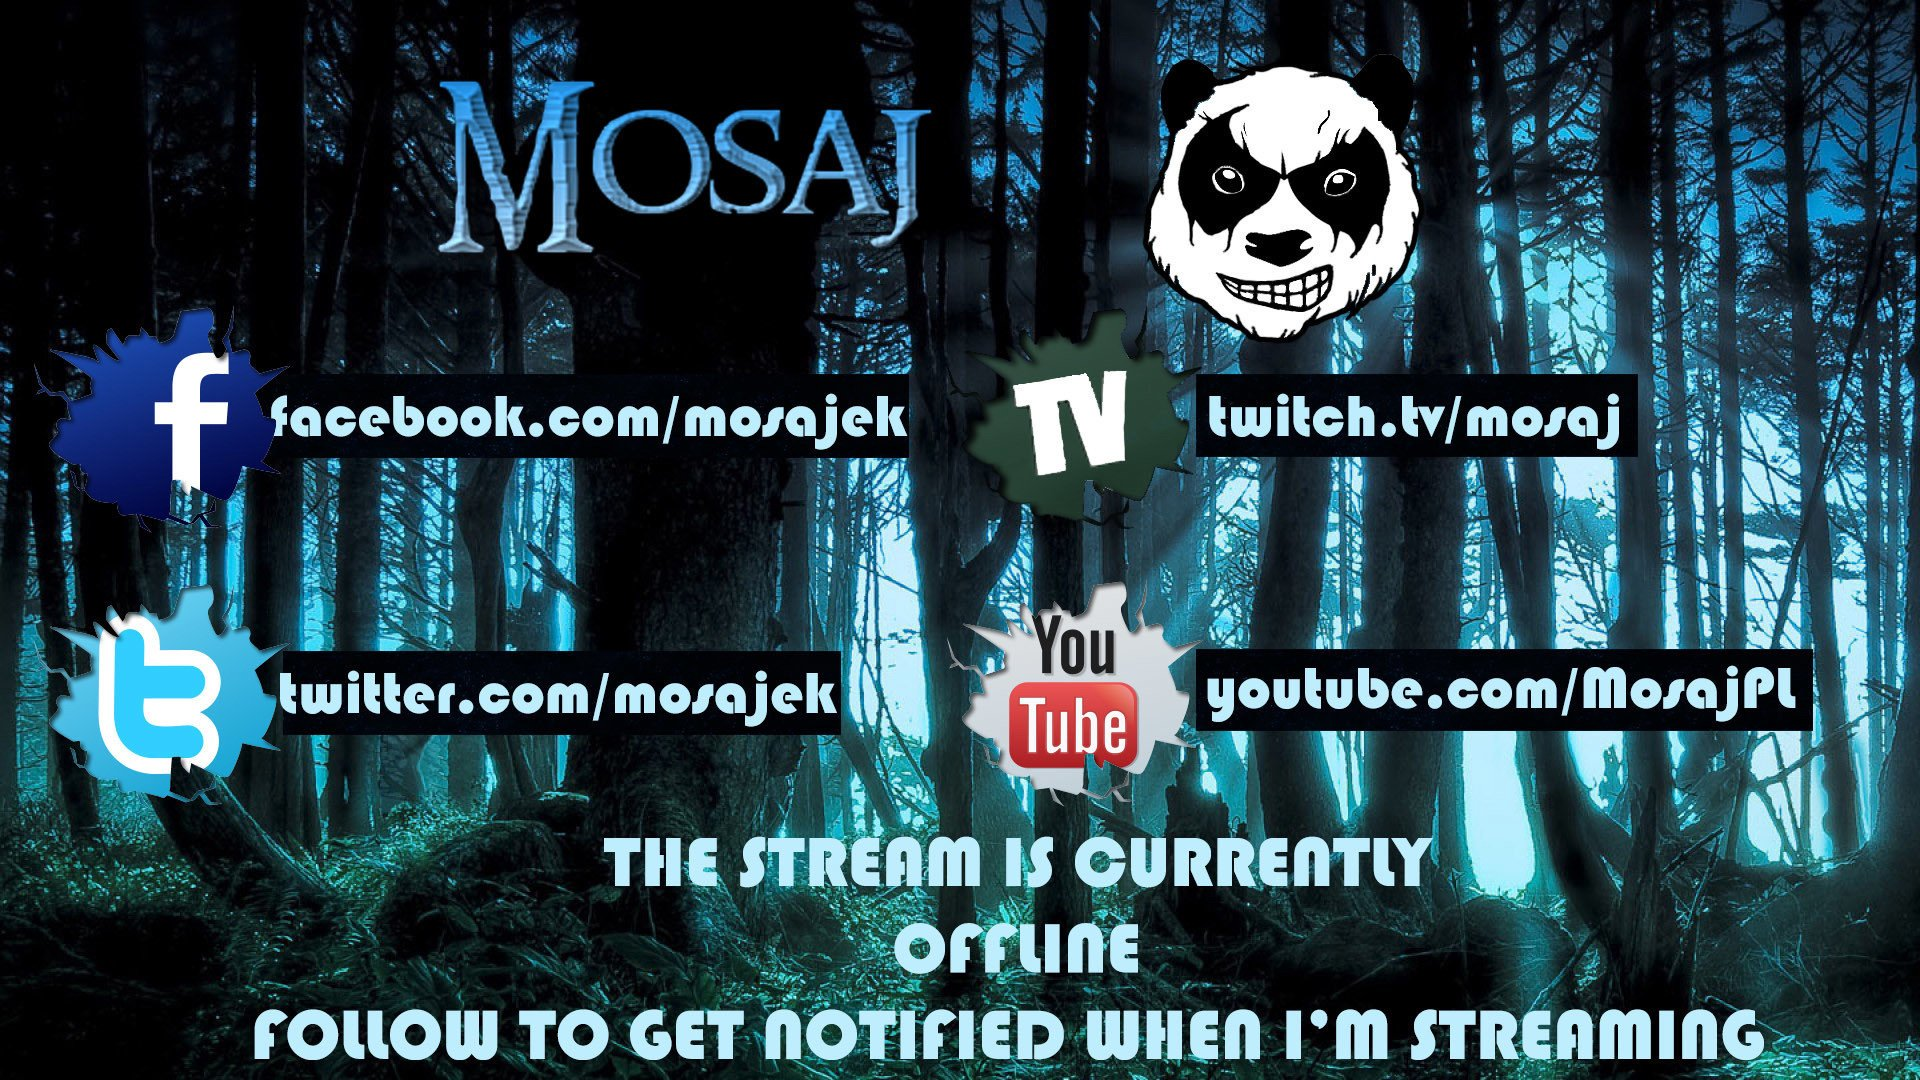 Twitch stream of Mosaj